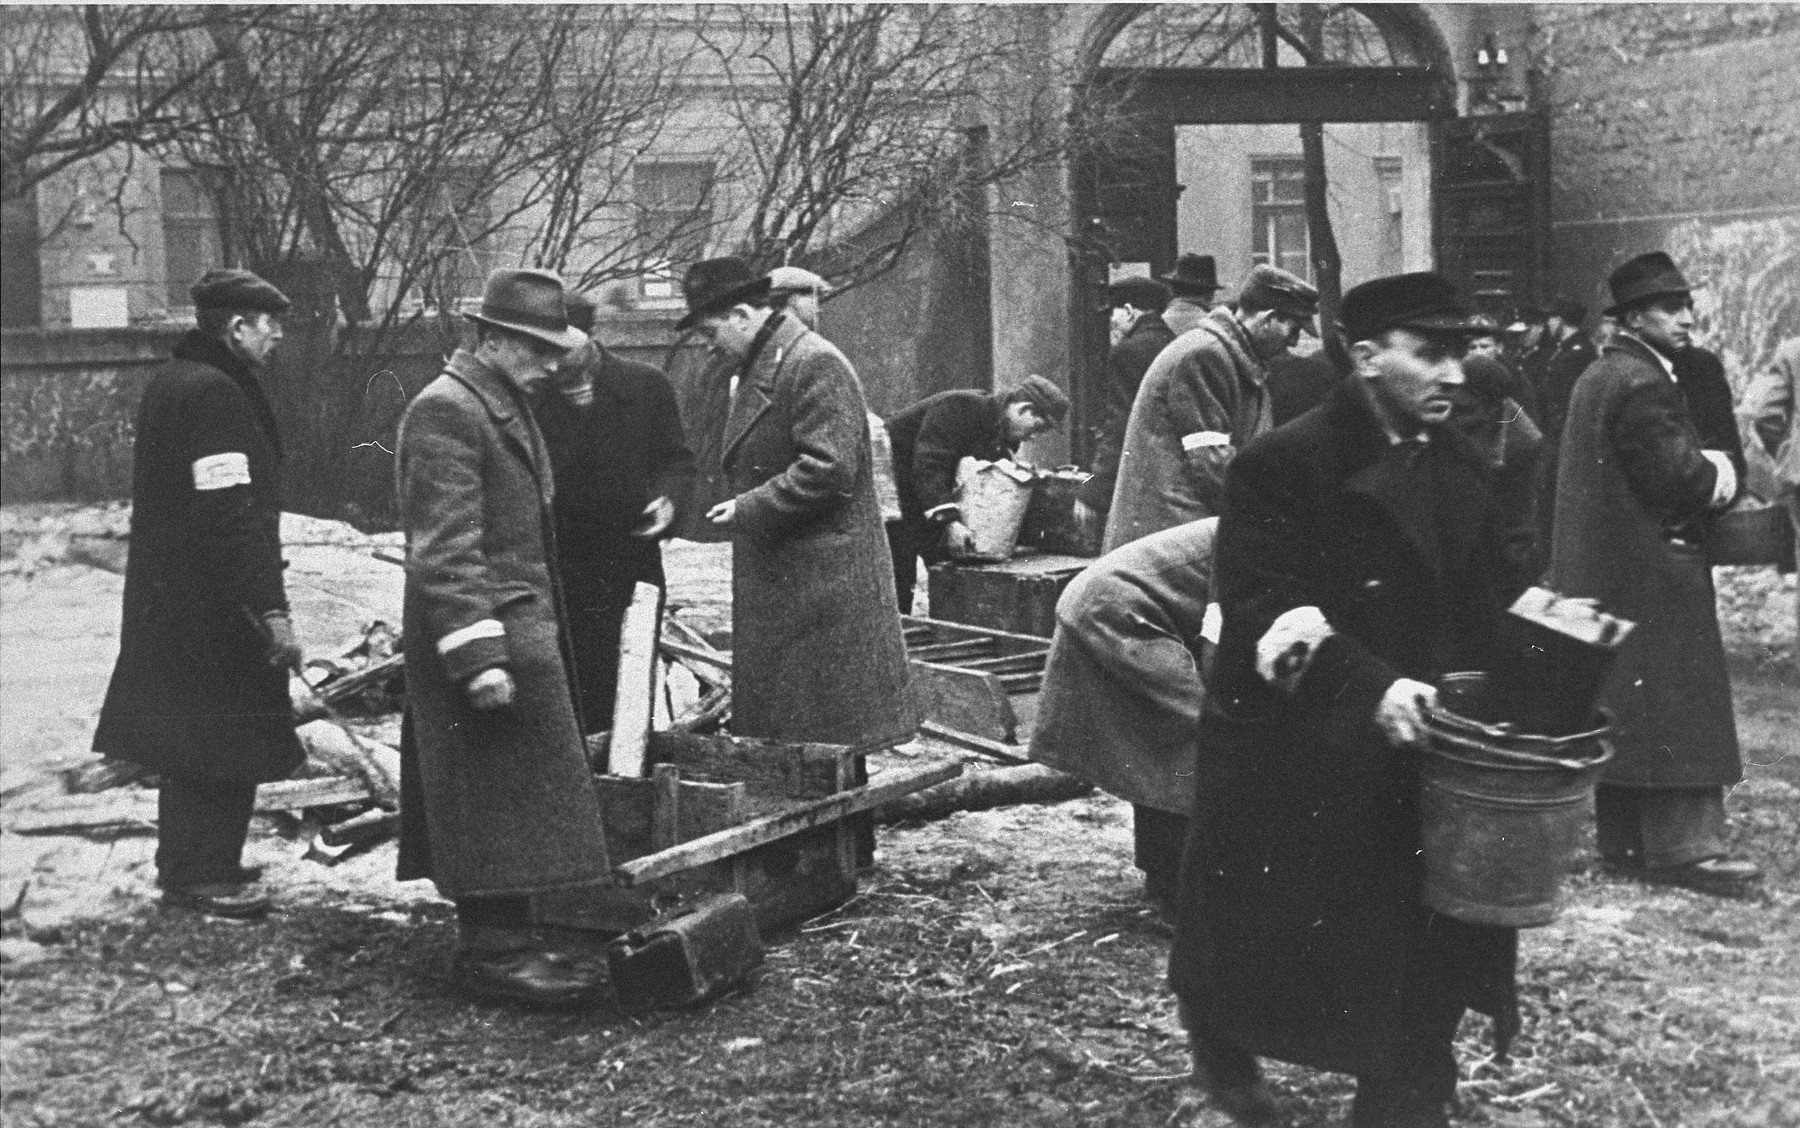 After a deportation action, a group of Jewish men is assigned the task of clearing out the homes of the deported.